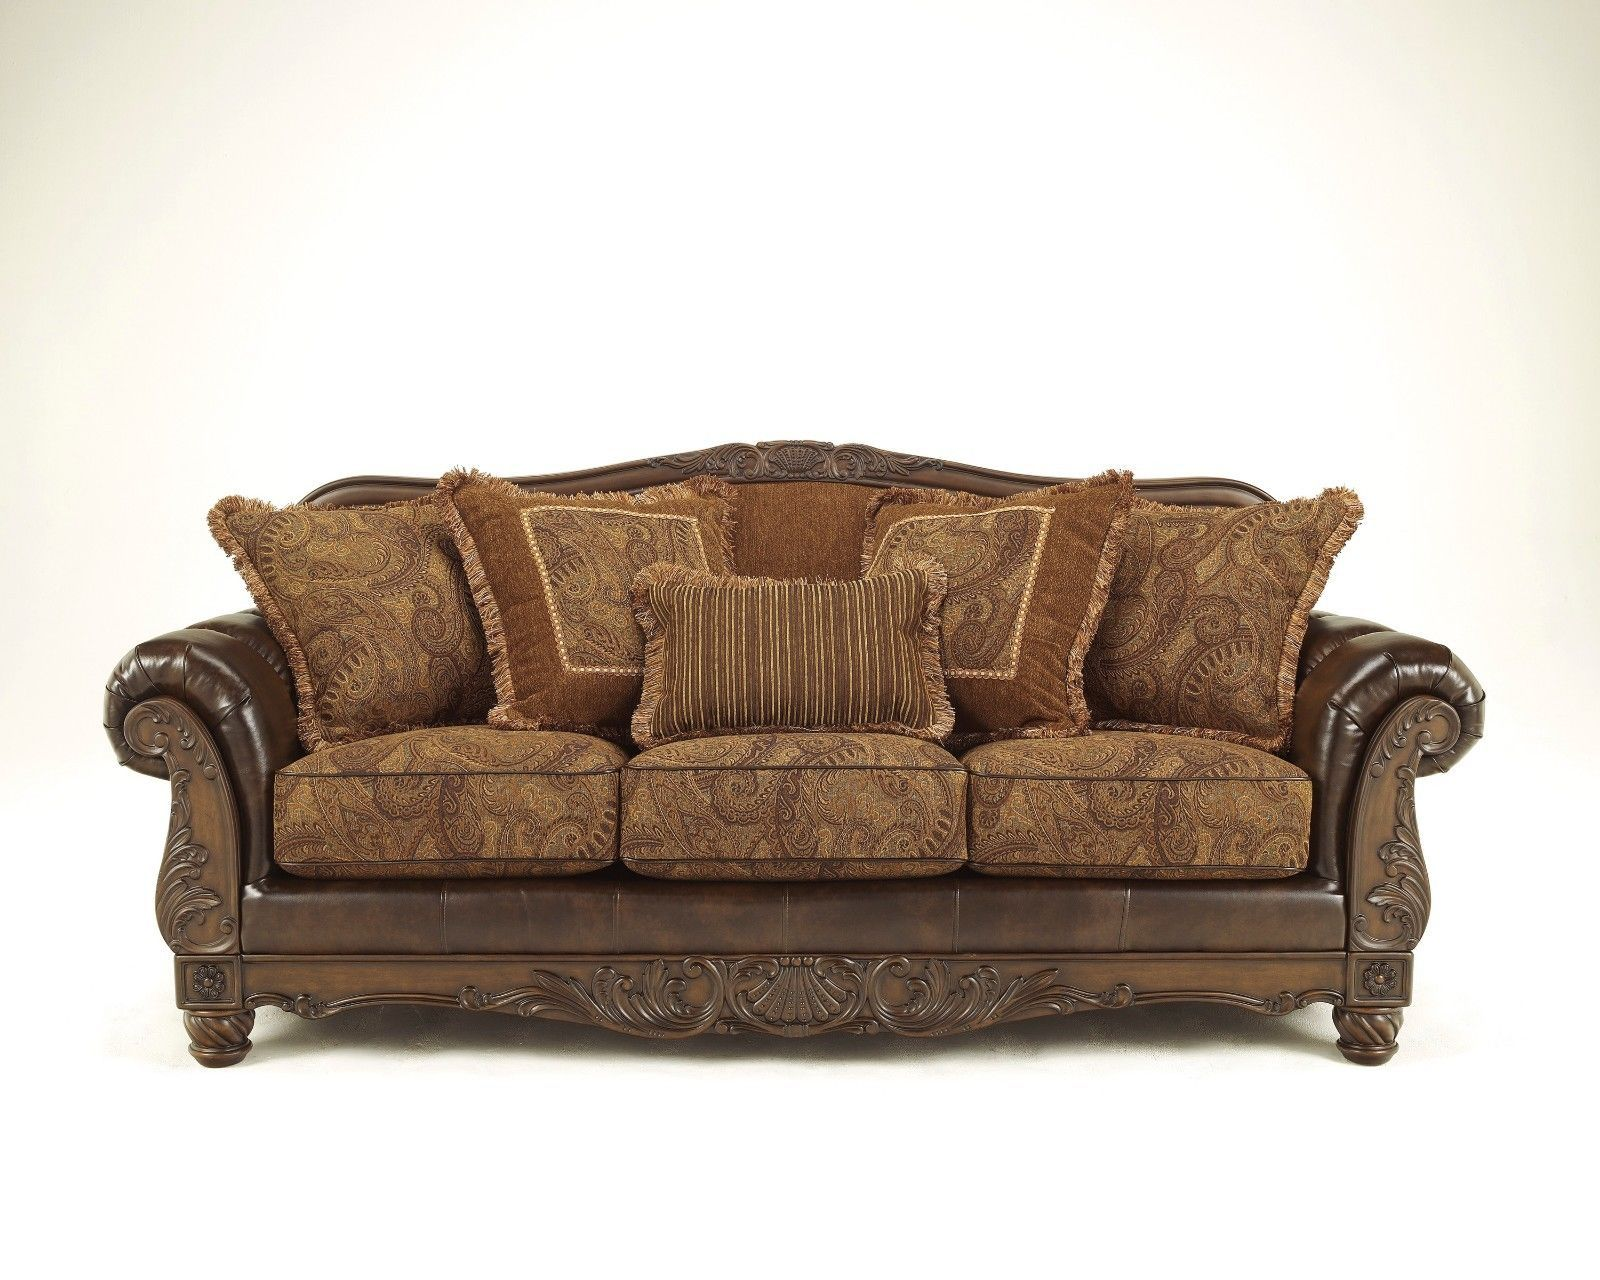 NEW ASHLEY OLD WORLD TRADITIONAL ANTIQUE SOFA COUCH LOVESEAT CHAIR LIVING  ROOM